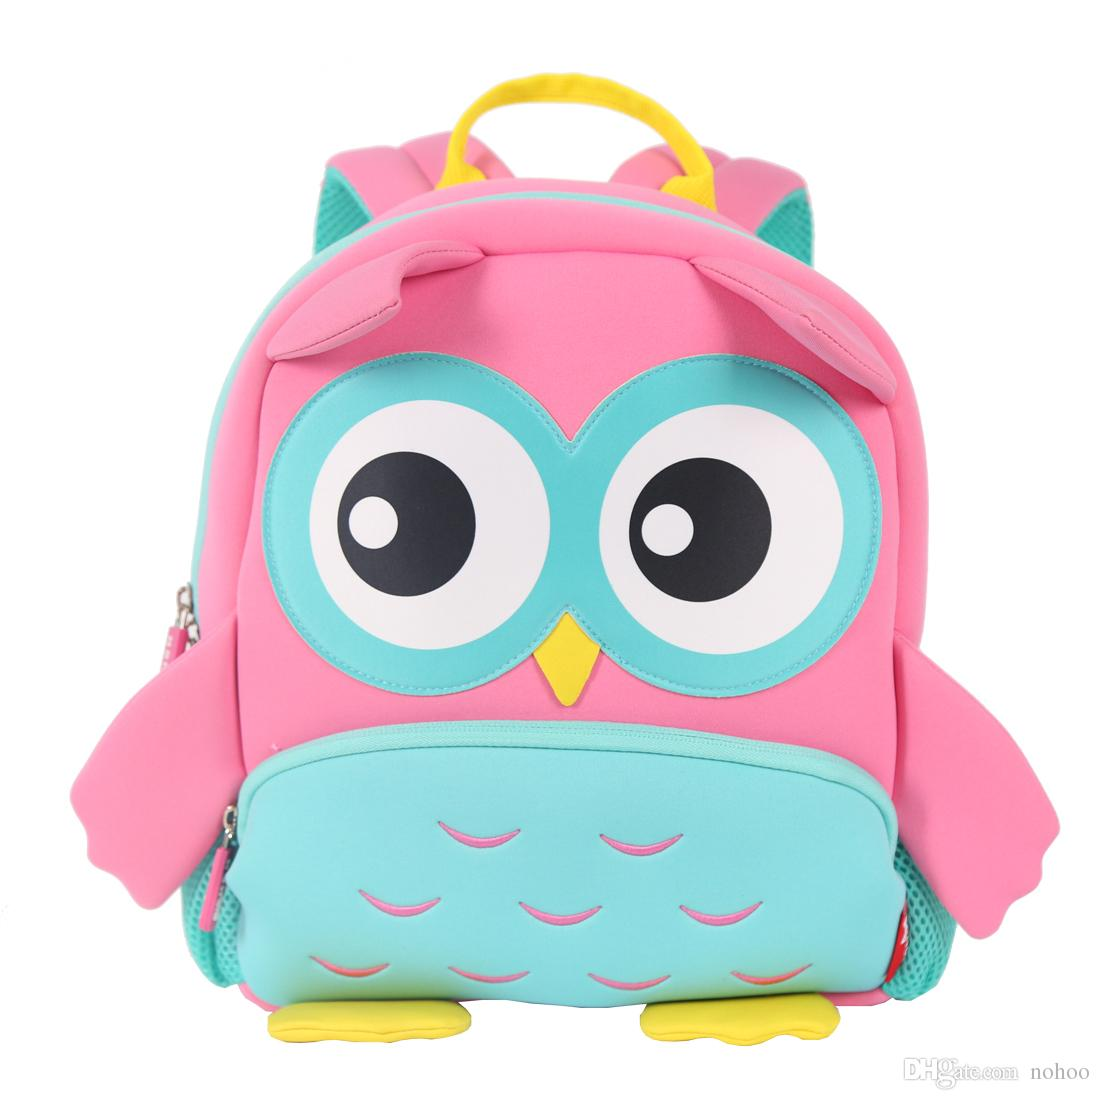 706c06d8cc NOHOO New Arrival High Quality Neoprene Owl Kids Backpack Travelling  Children School Bag Best Gifts For Kindergarten Ergonomic Backpack Kids  School ...